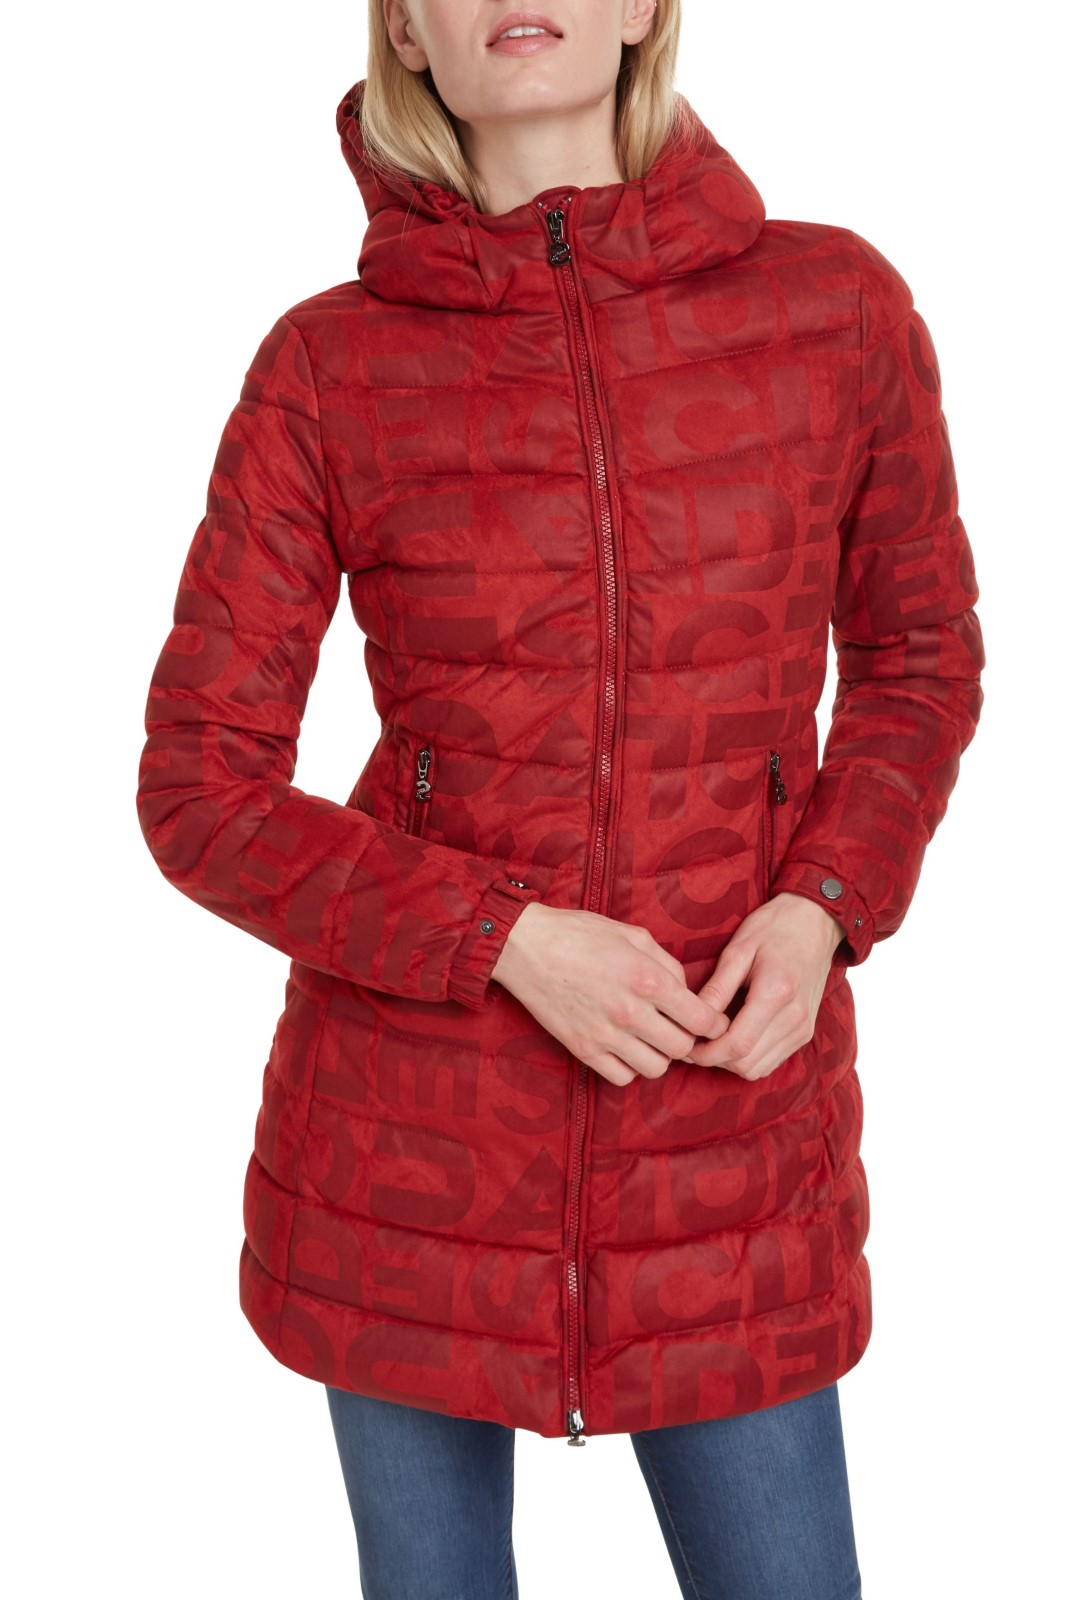 Desigual cappotto Padded Letras rosso